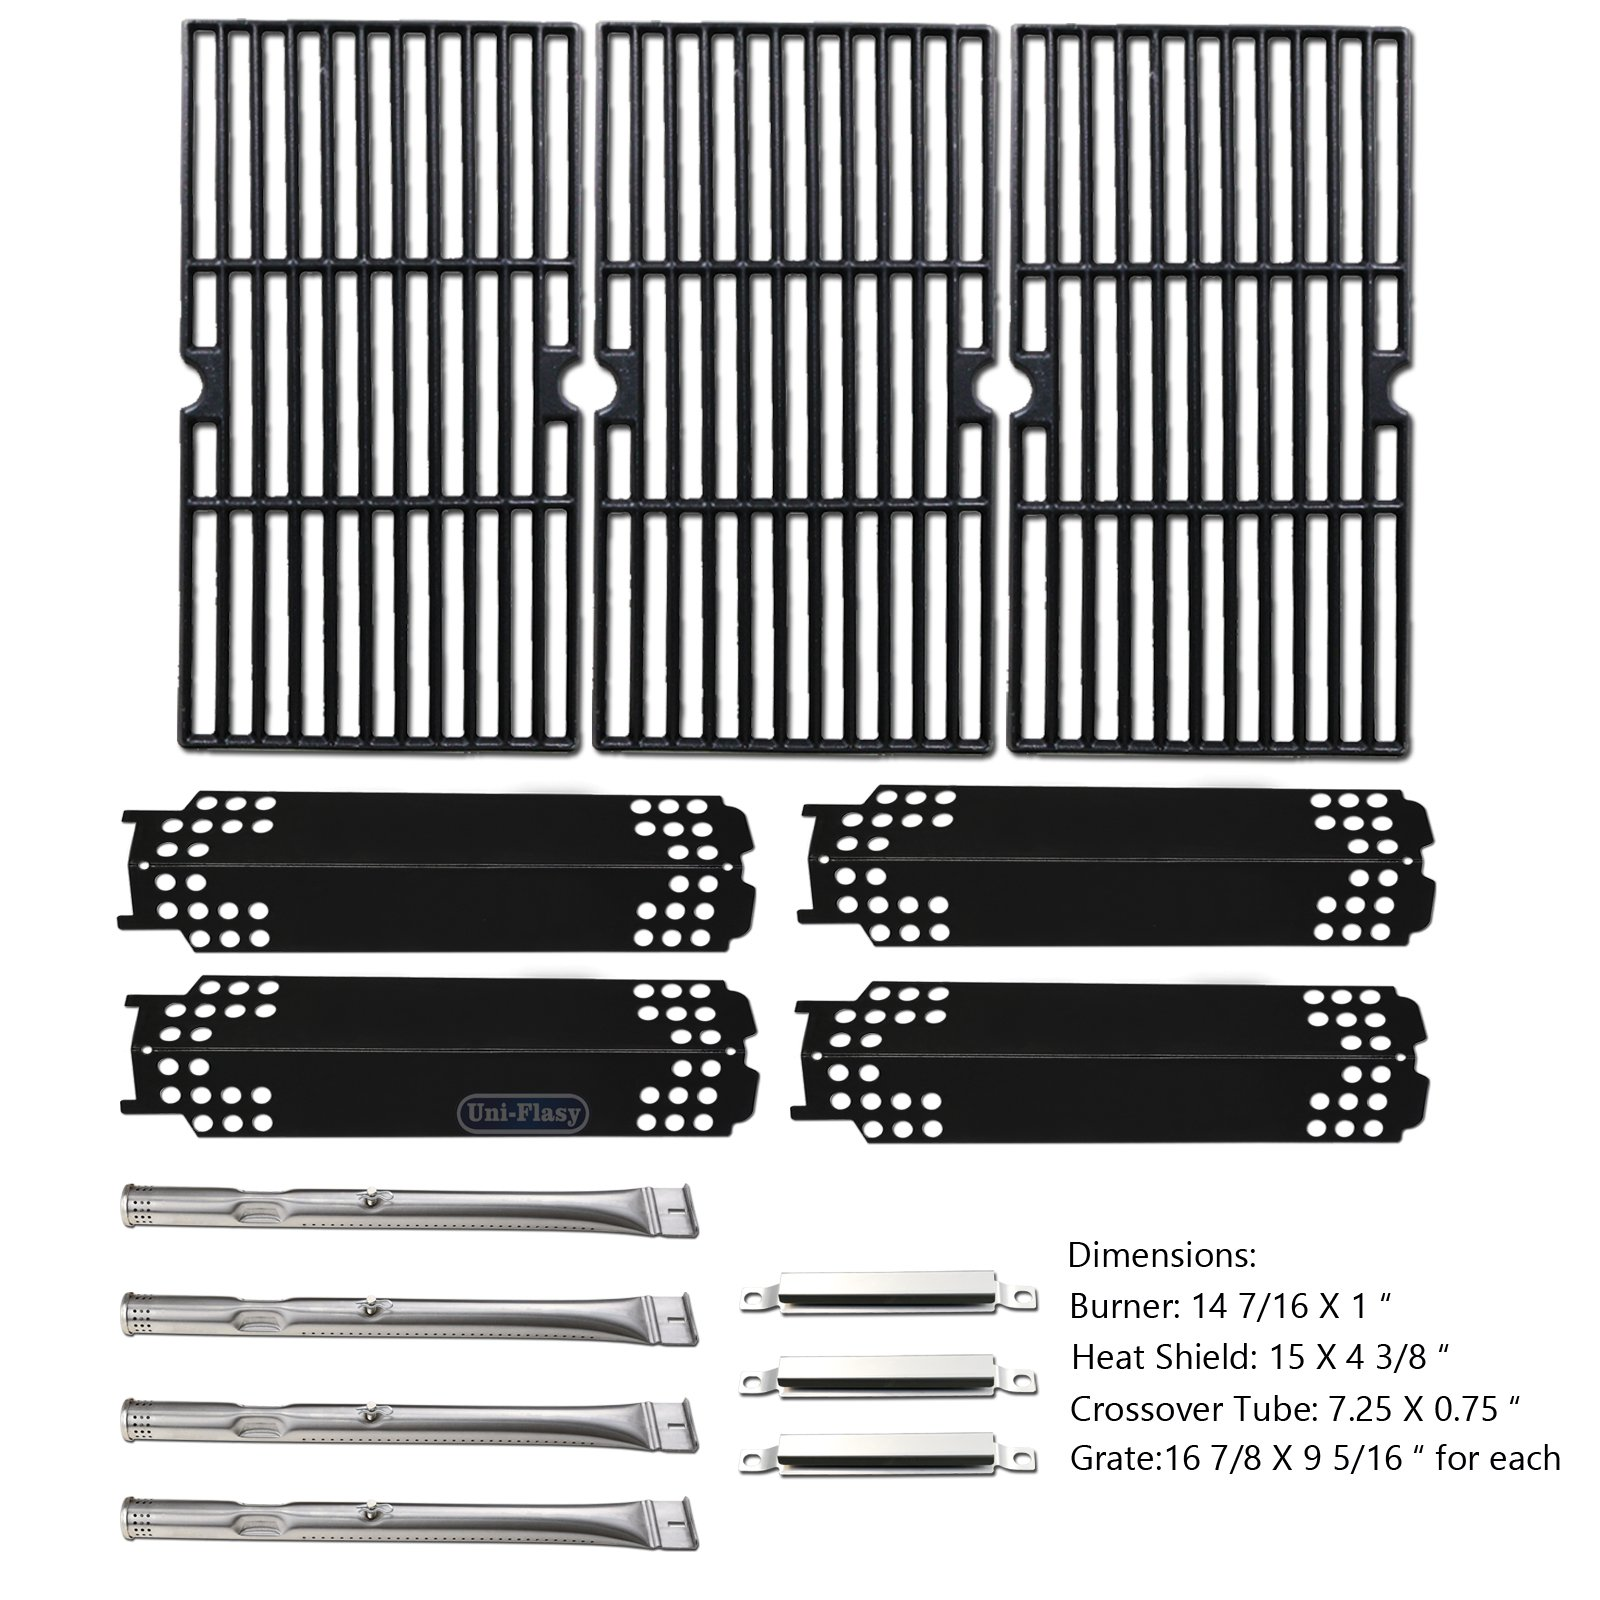 Uniflasy Grill Replacement Parts Kit for Charbroil 461334813, 463436215, 463436213, Thermos 466360113 and Other Grills, Includes Burner Tube, Heat Shield Plate, Cooking Grate and Crossover Tube by Uniflasy